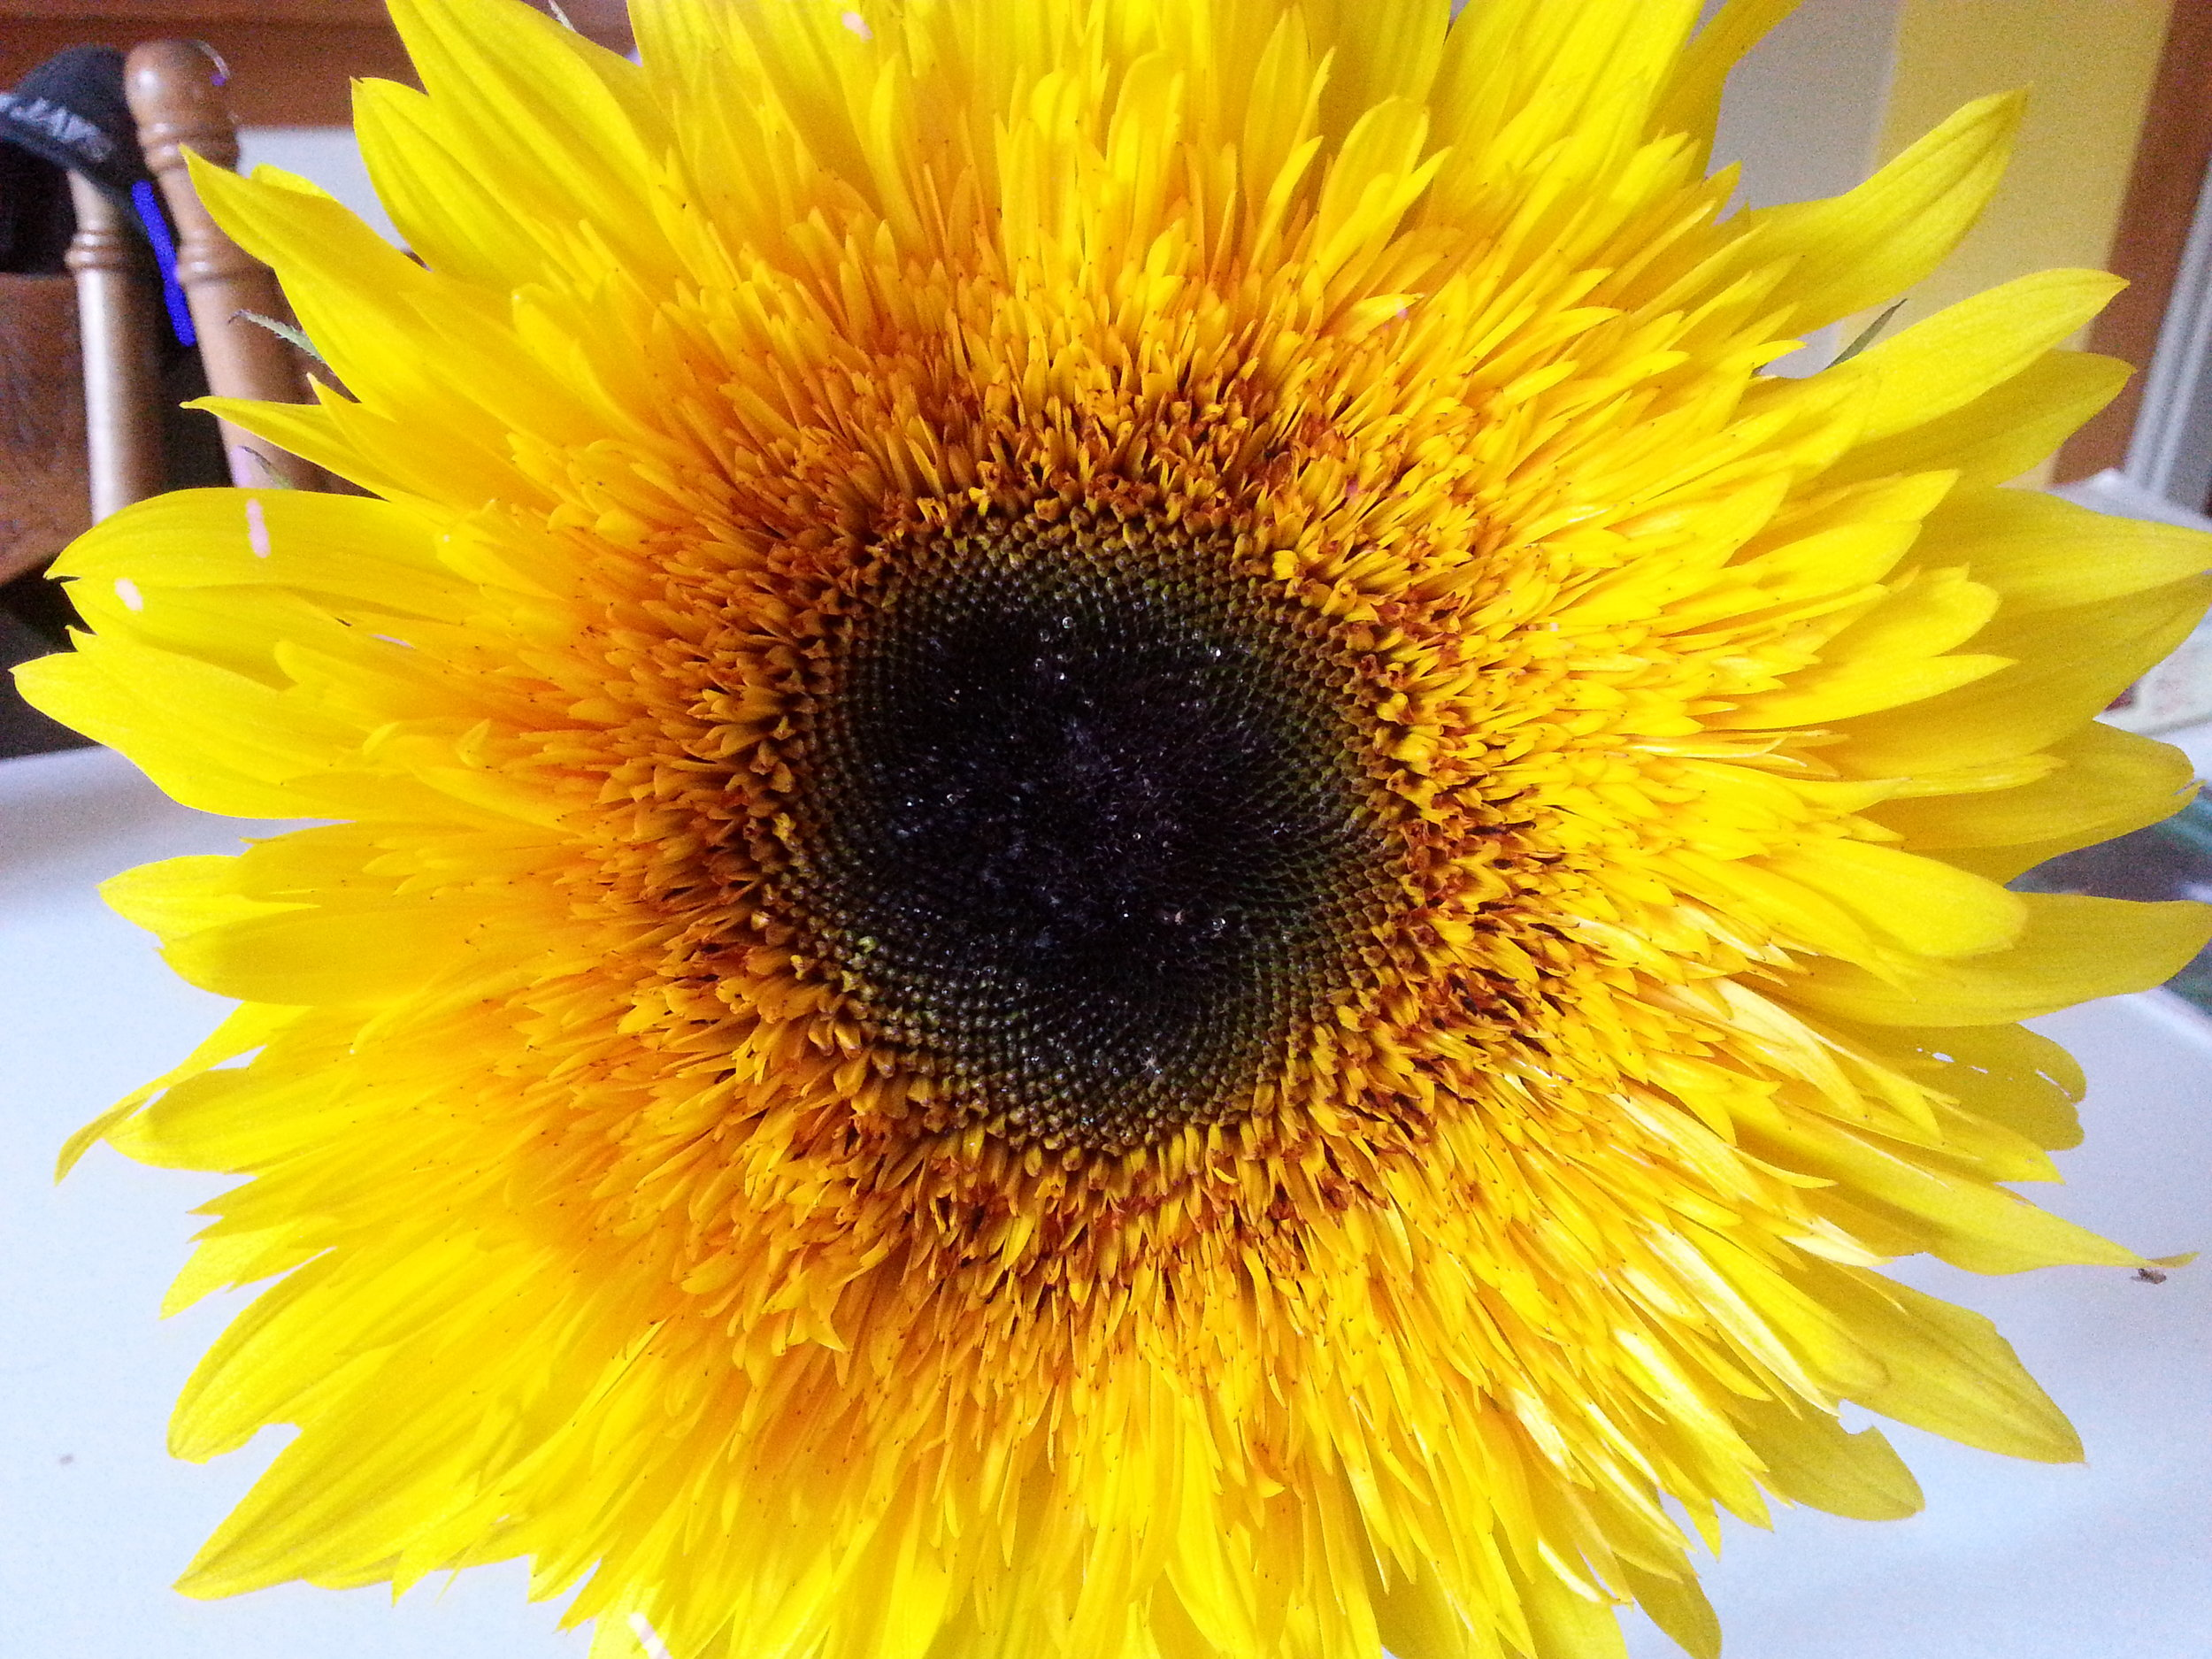 Panache Starburst Sunflower